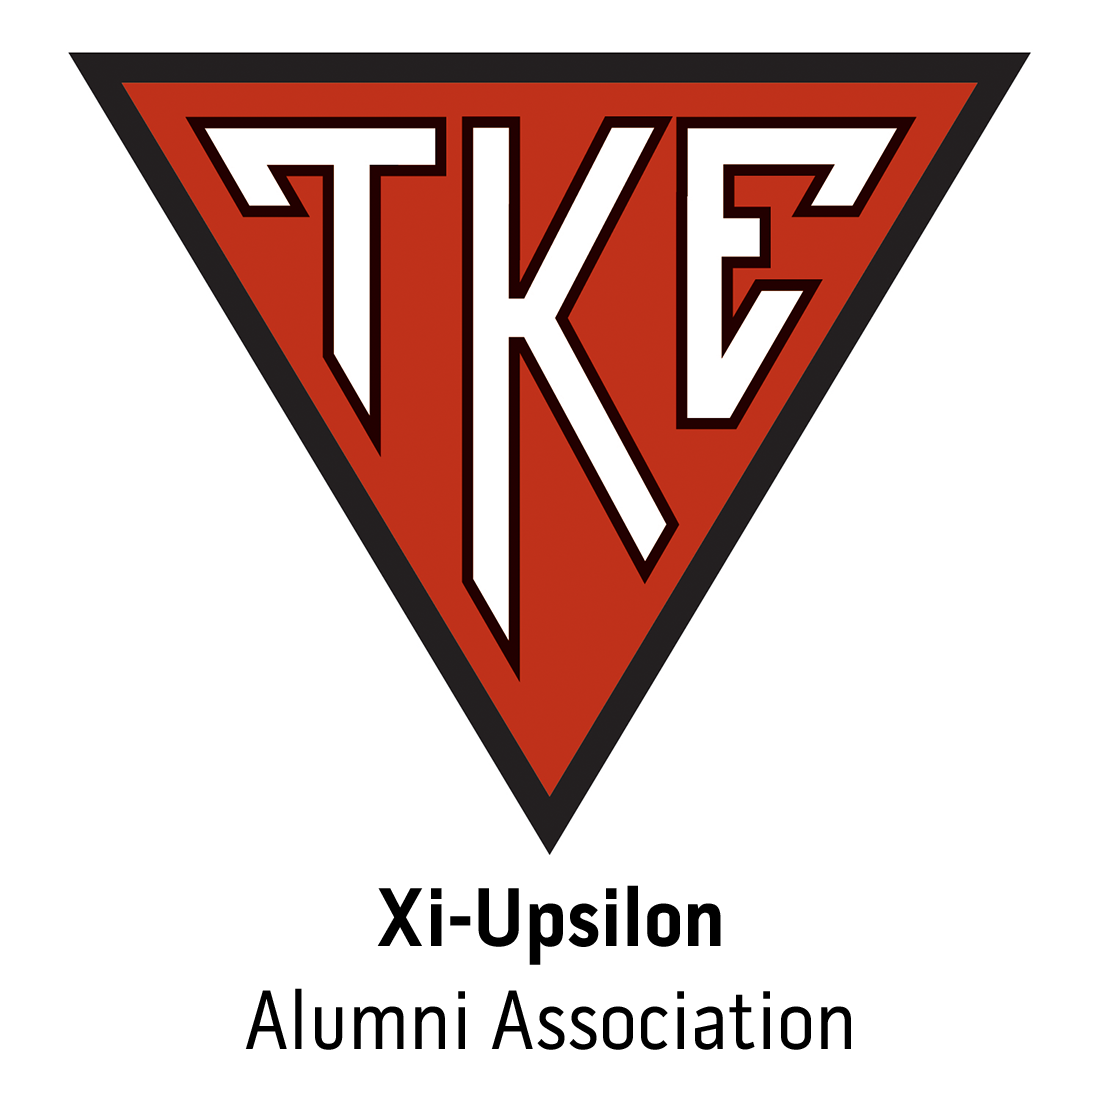 Xi-Upsilon Alumni Association at Rochester Institute of Technology